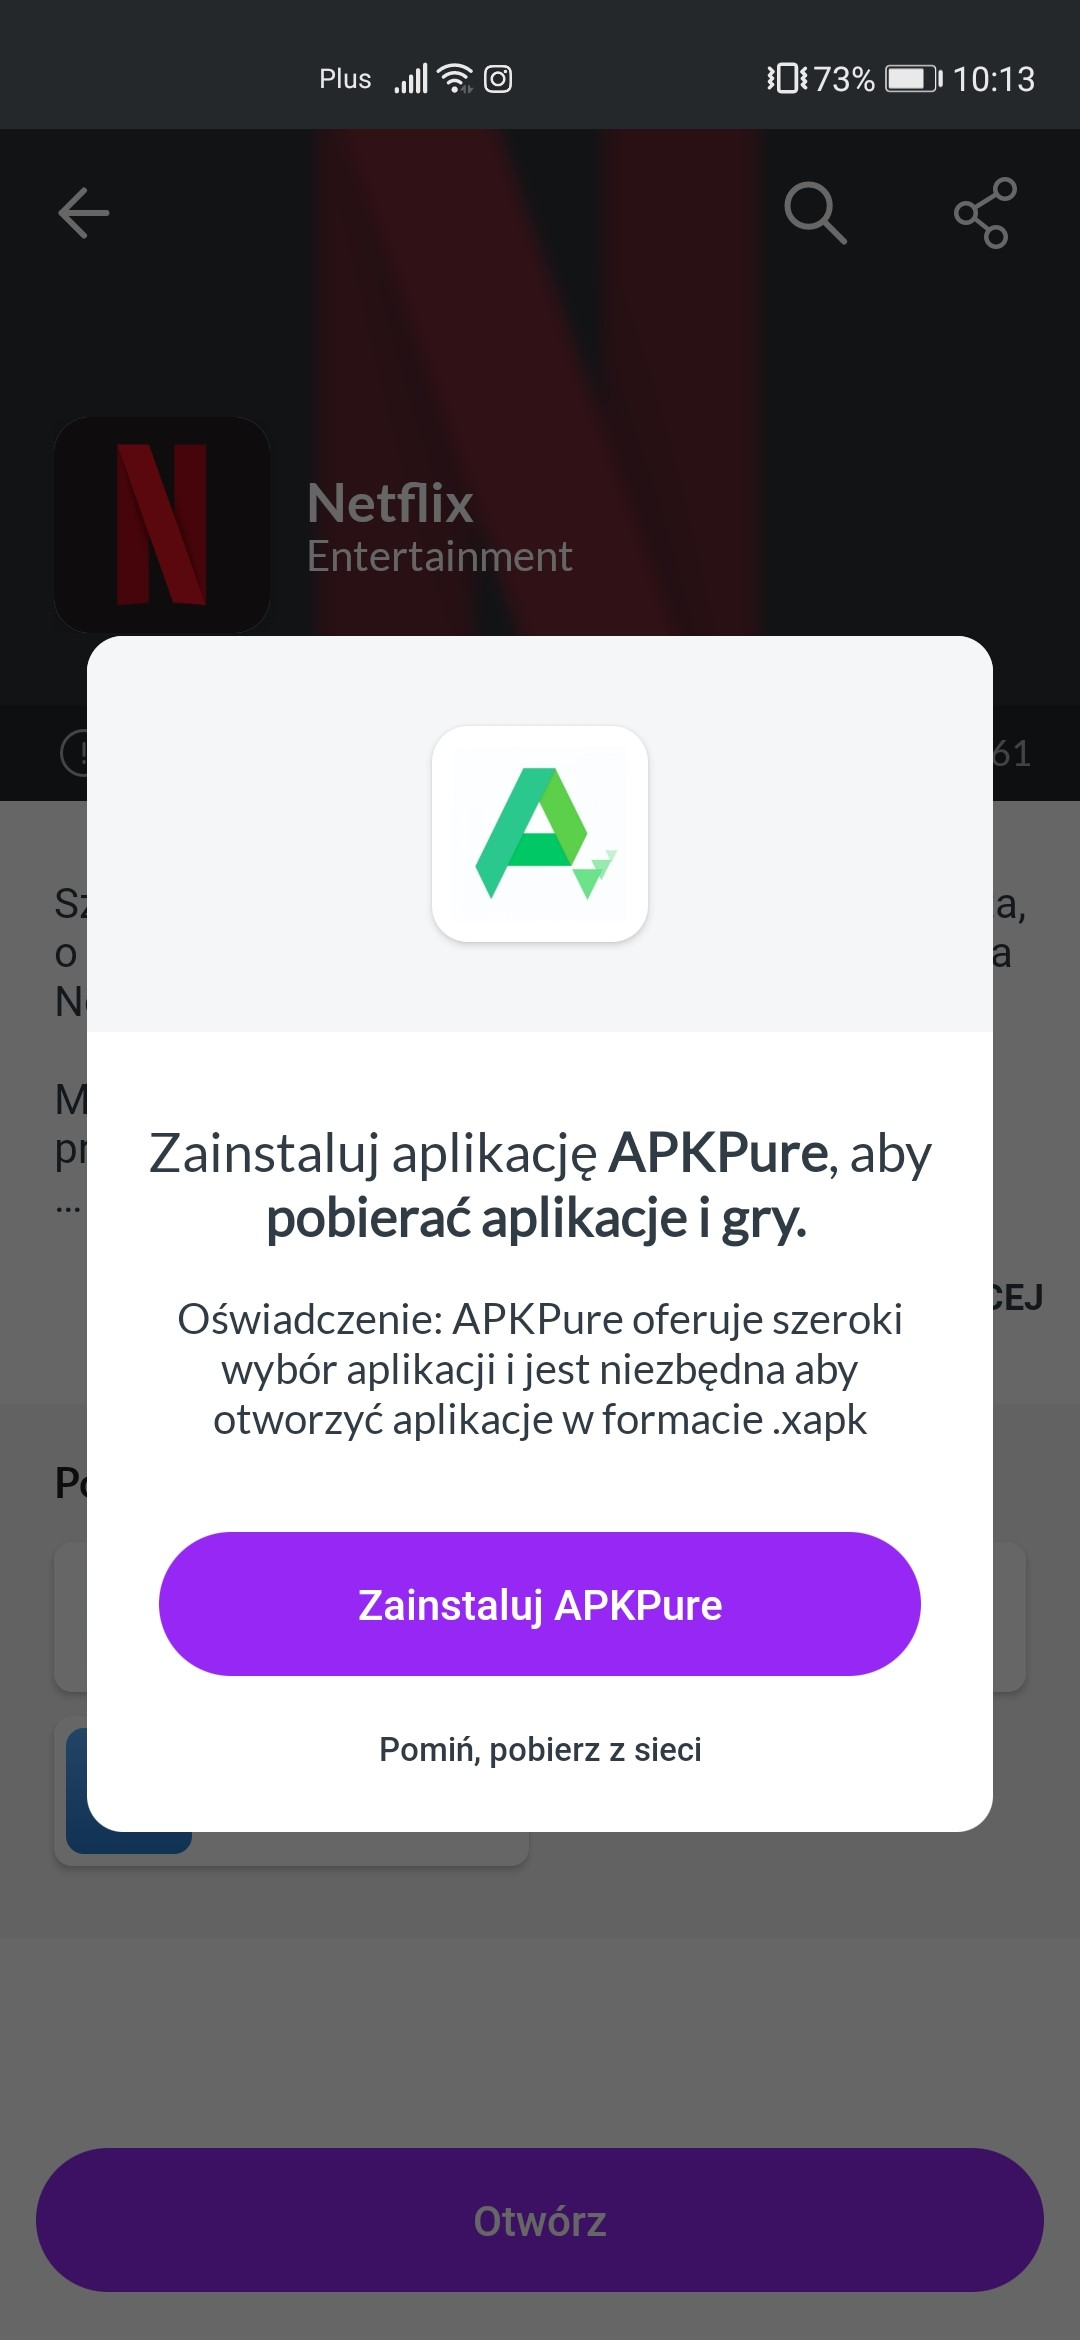 moreapps